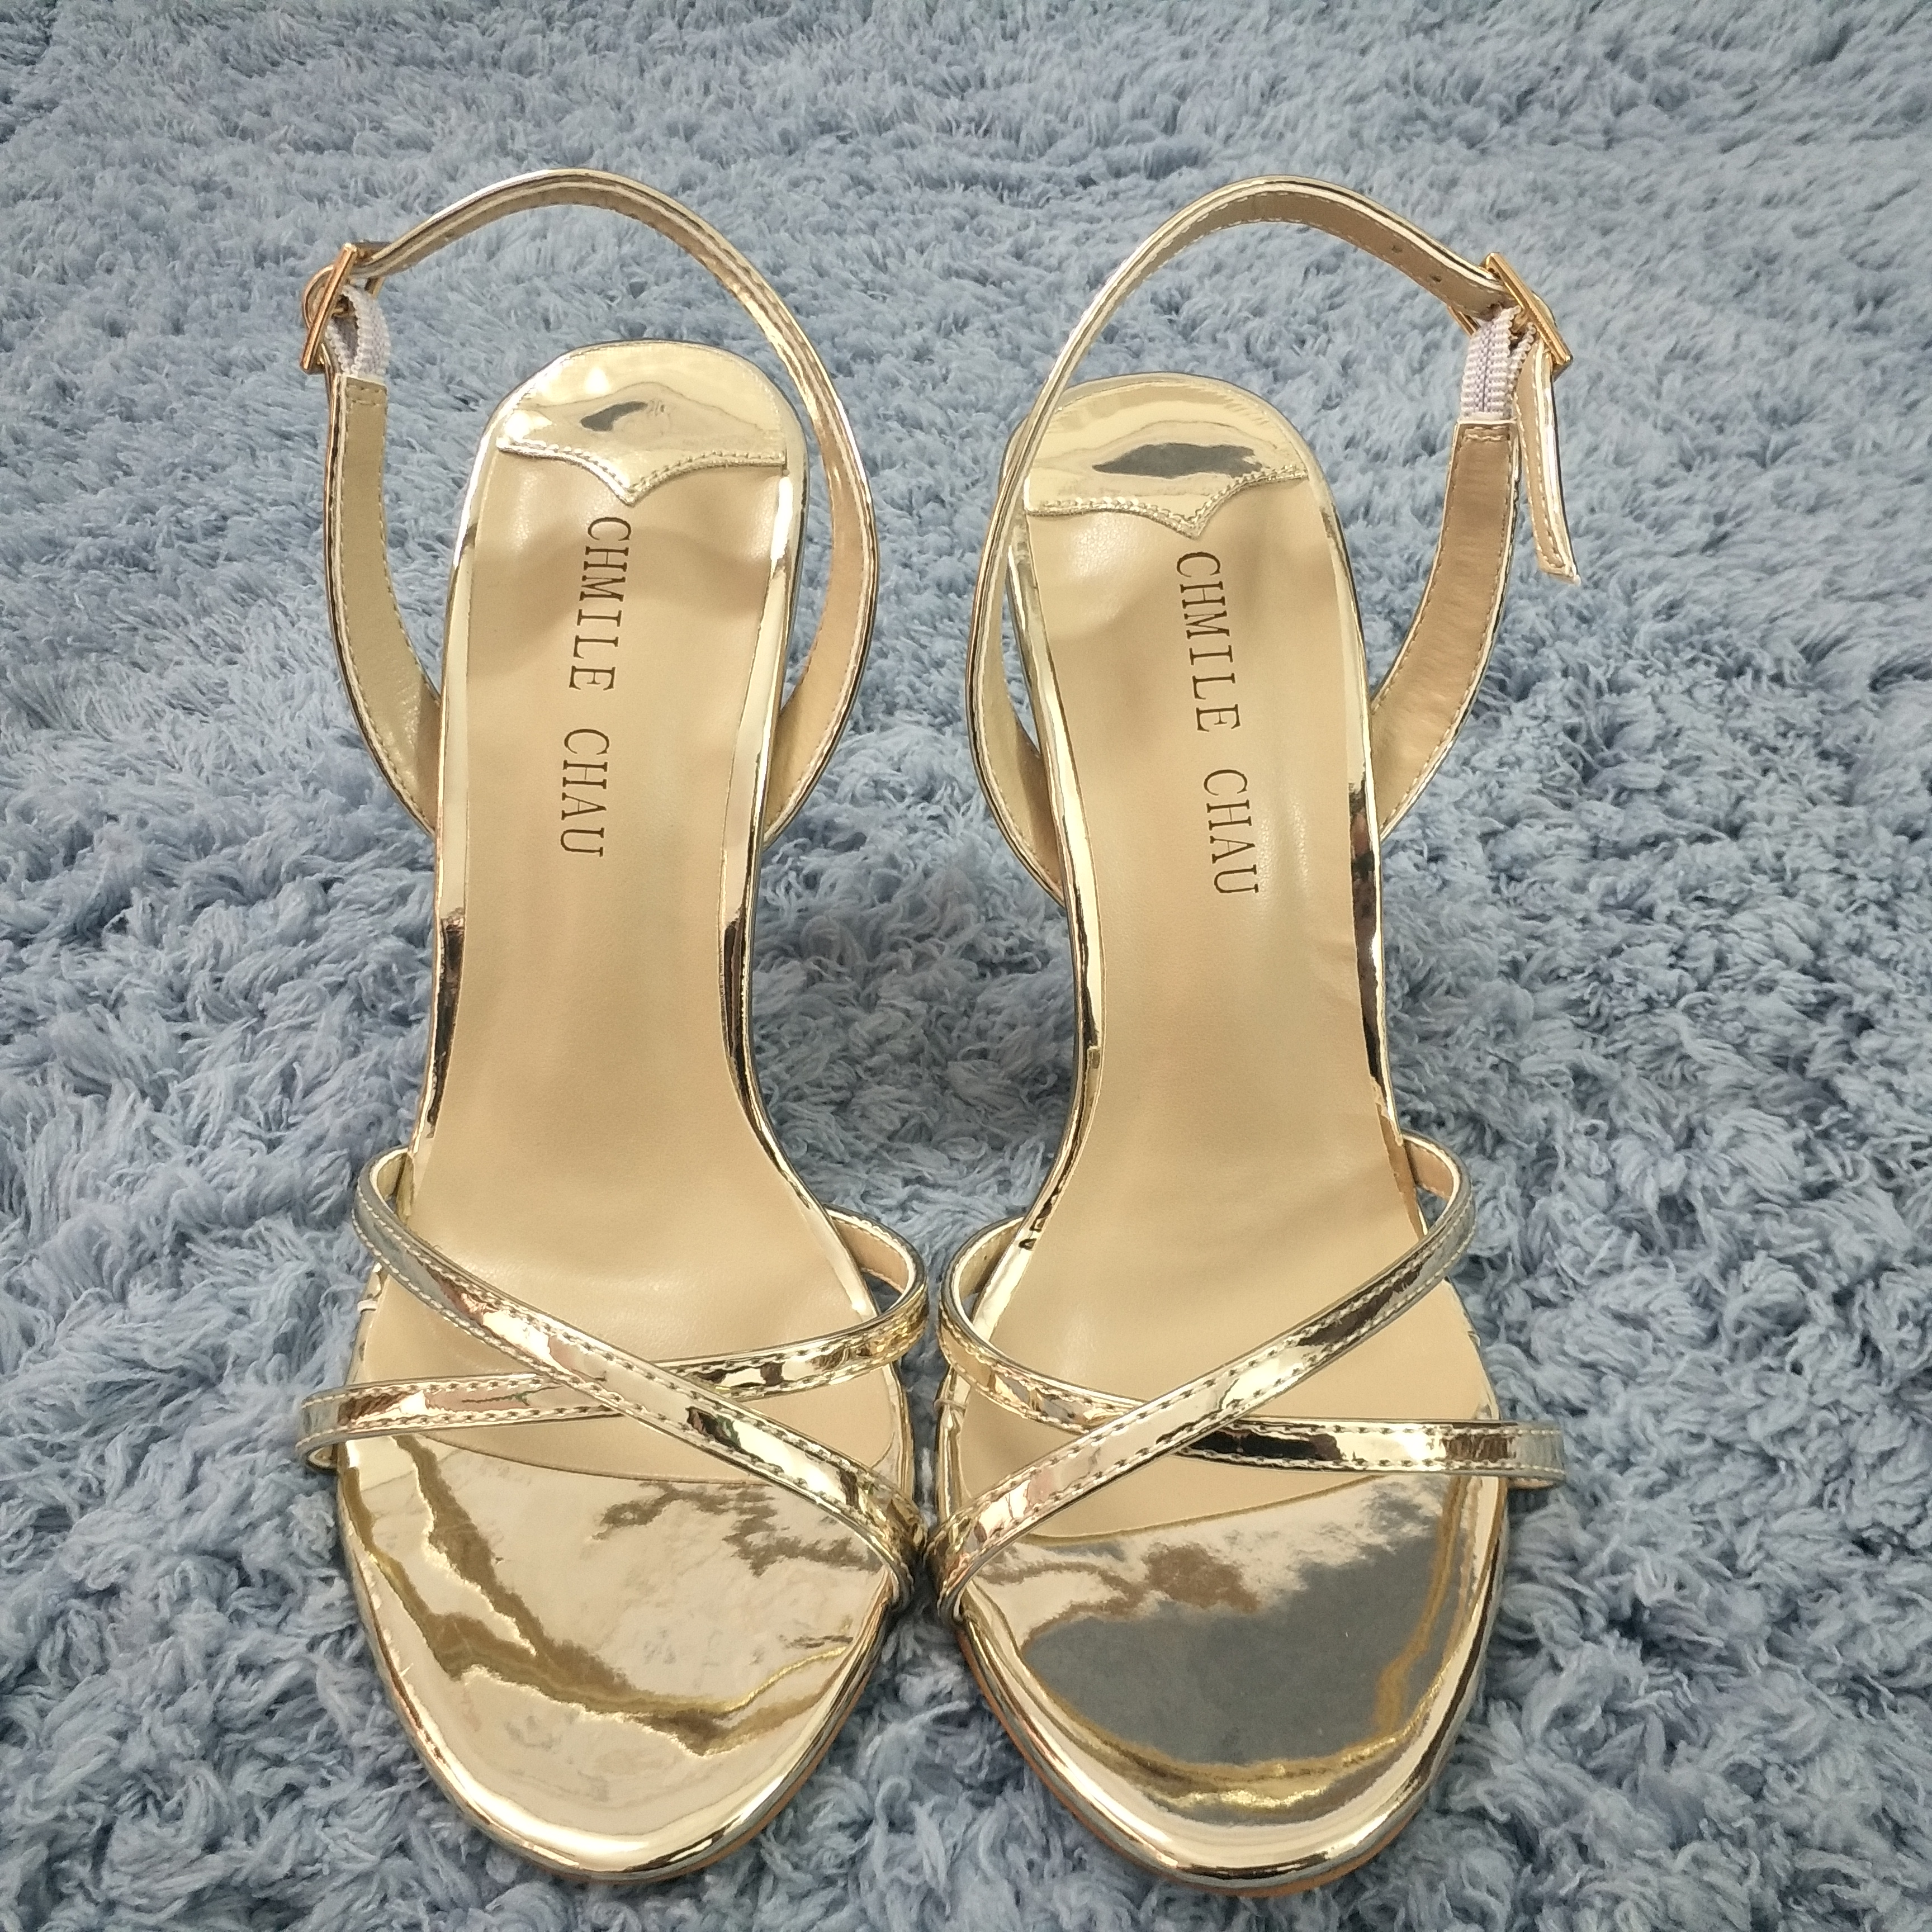 Women Stiletto Thin High Heel Sandal Sexy Sling Back Strap Open Toe Gold Patent Wedding Party Bridals Ball Lady Shoe 158-b